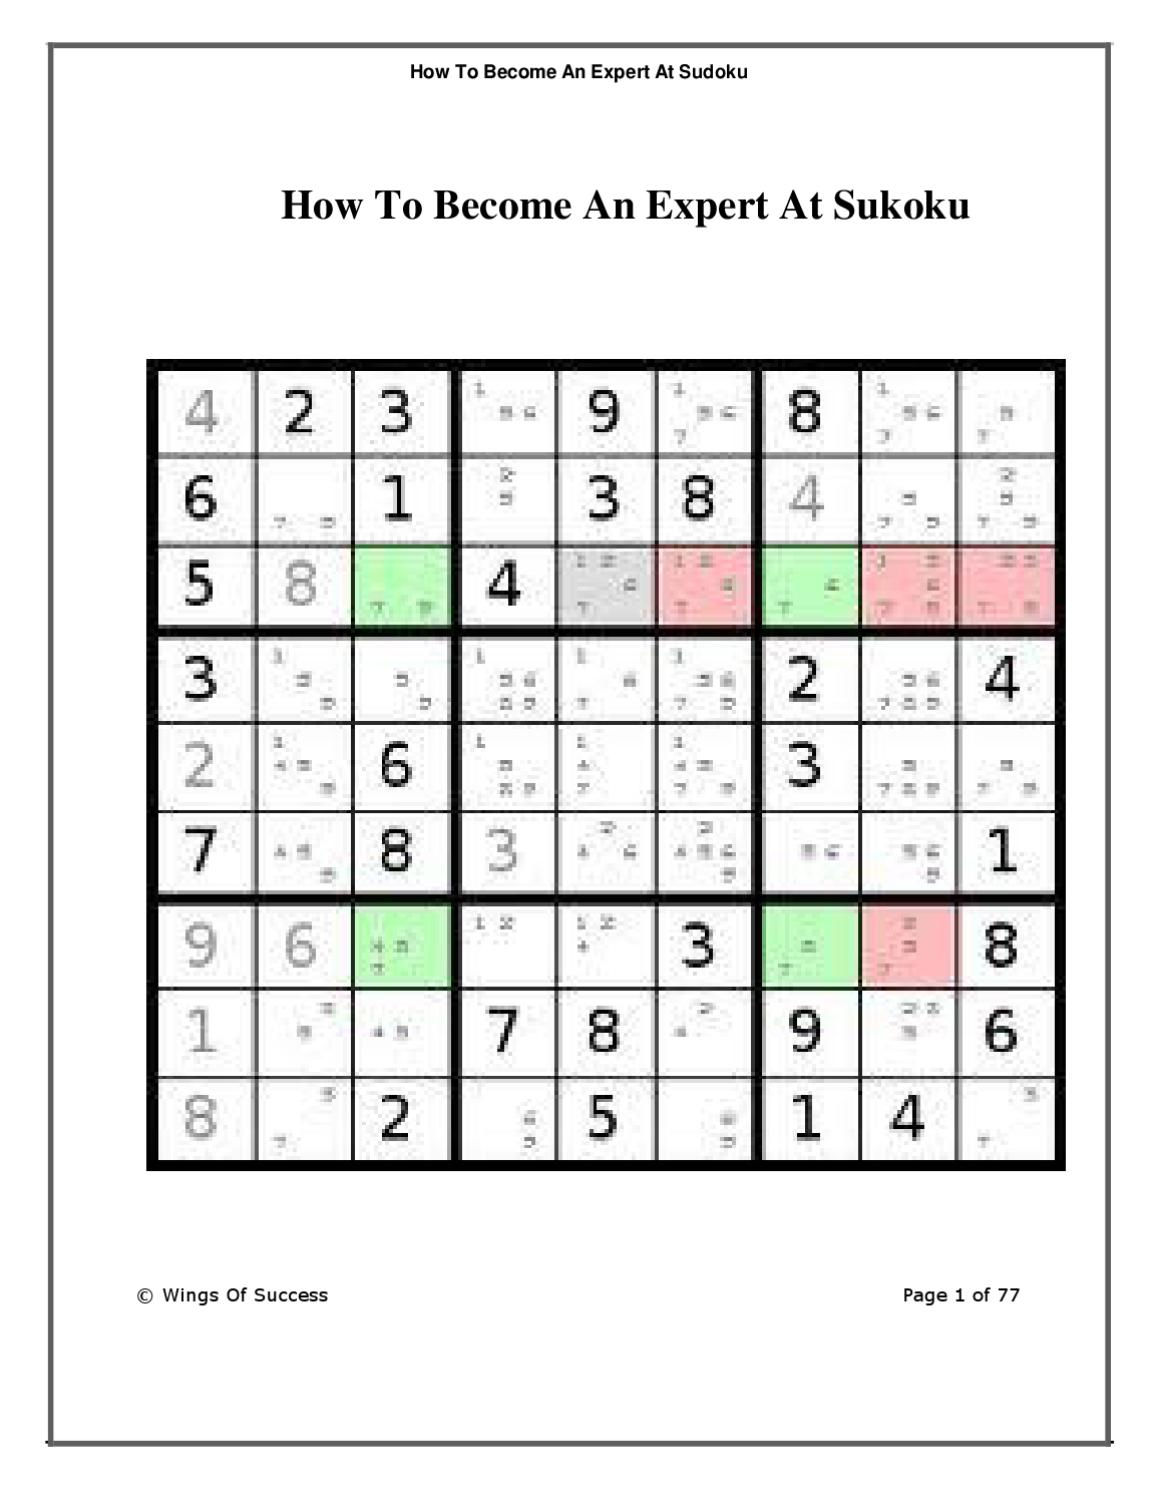 How To Win At Sudokubecky White - Issuu